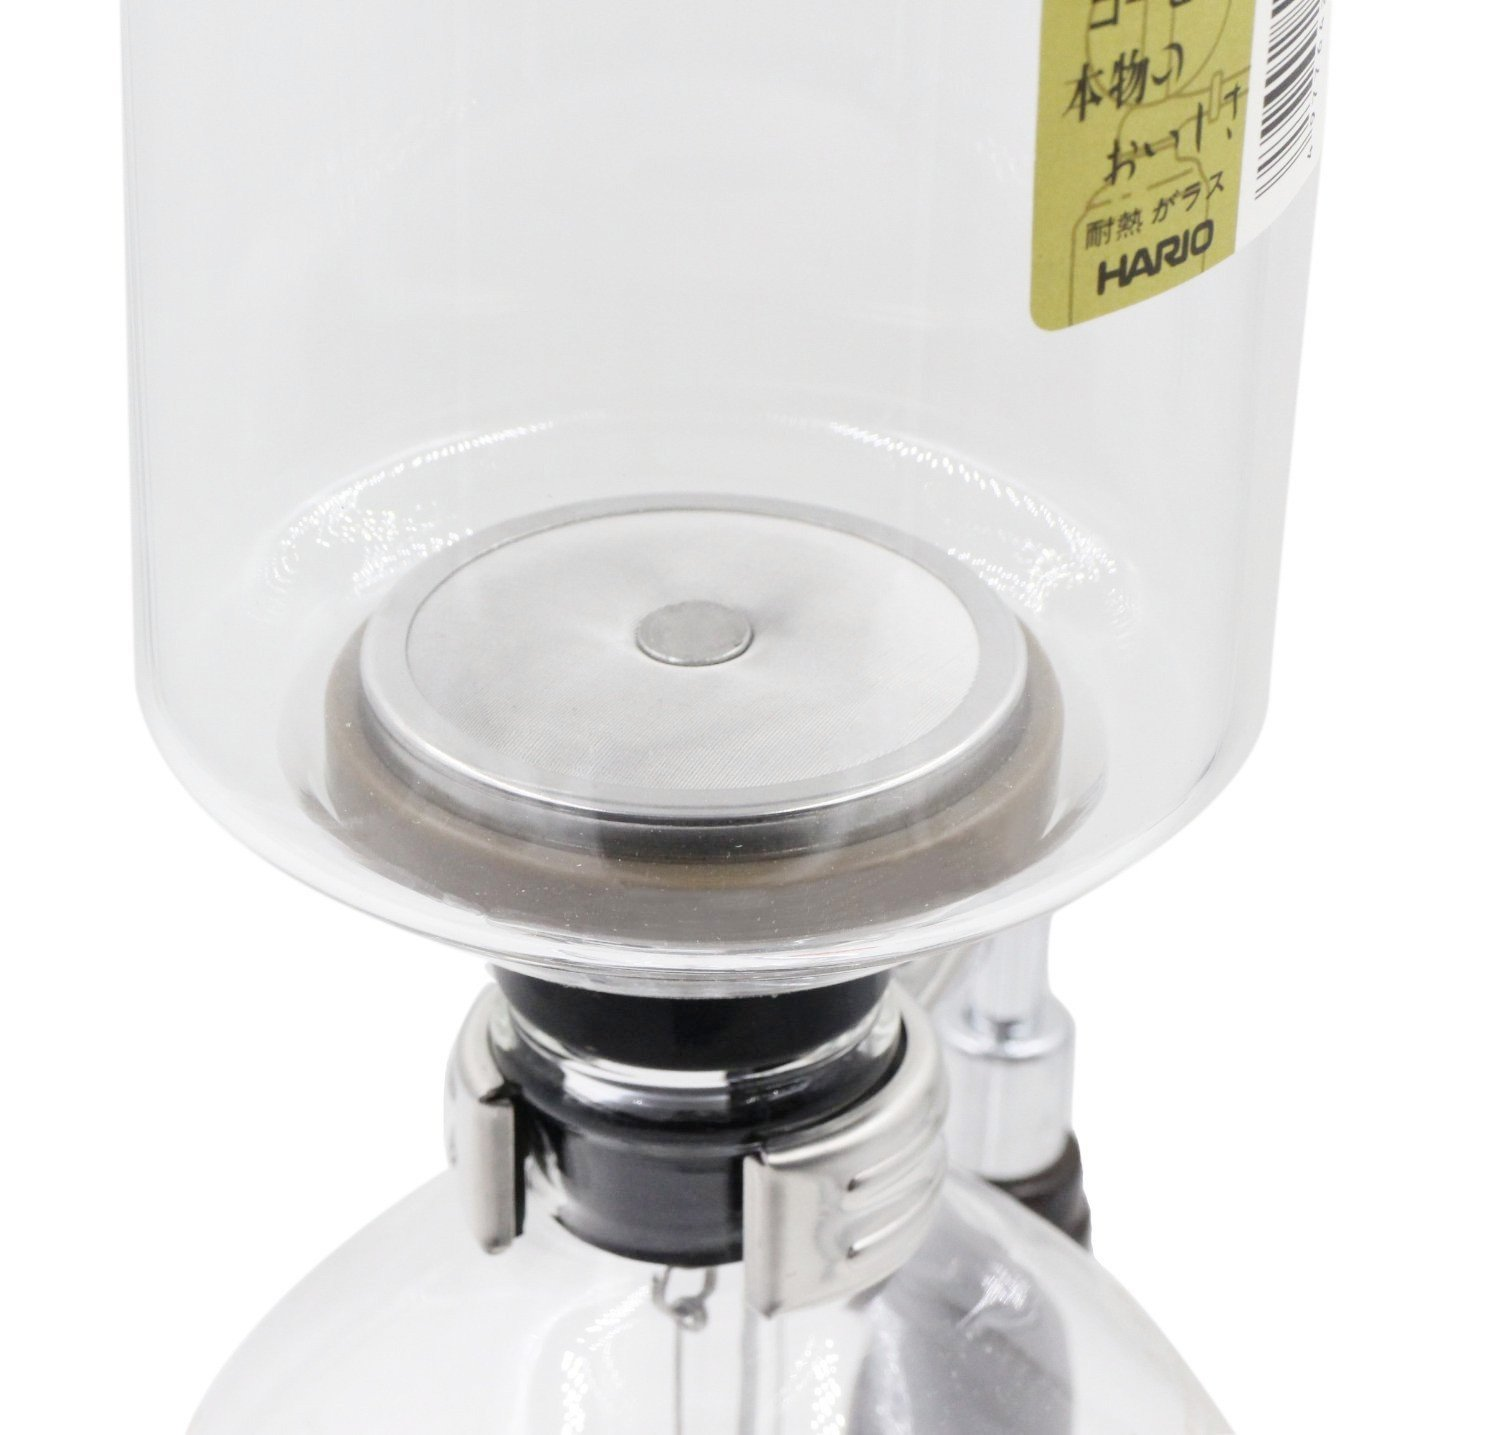 Diguo Permanent Coffee Filter for All Hario Siphon Coffee Maker and Other Syphon Coffee Maker Model: 1889A (Brown)